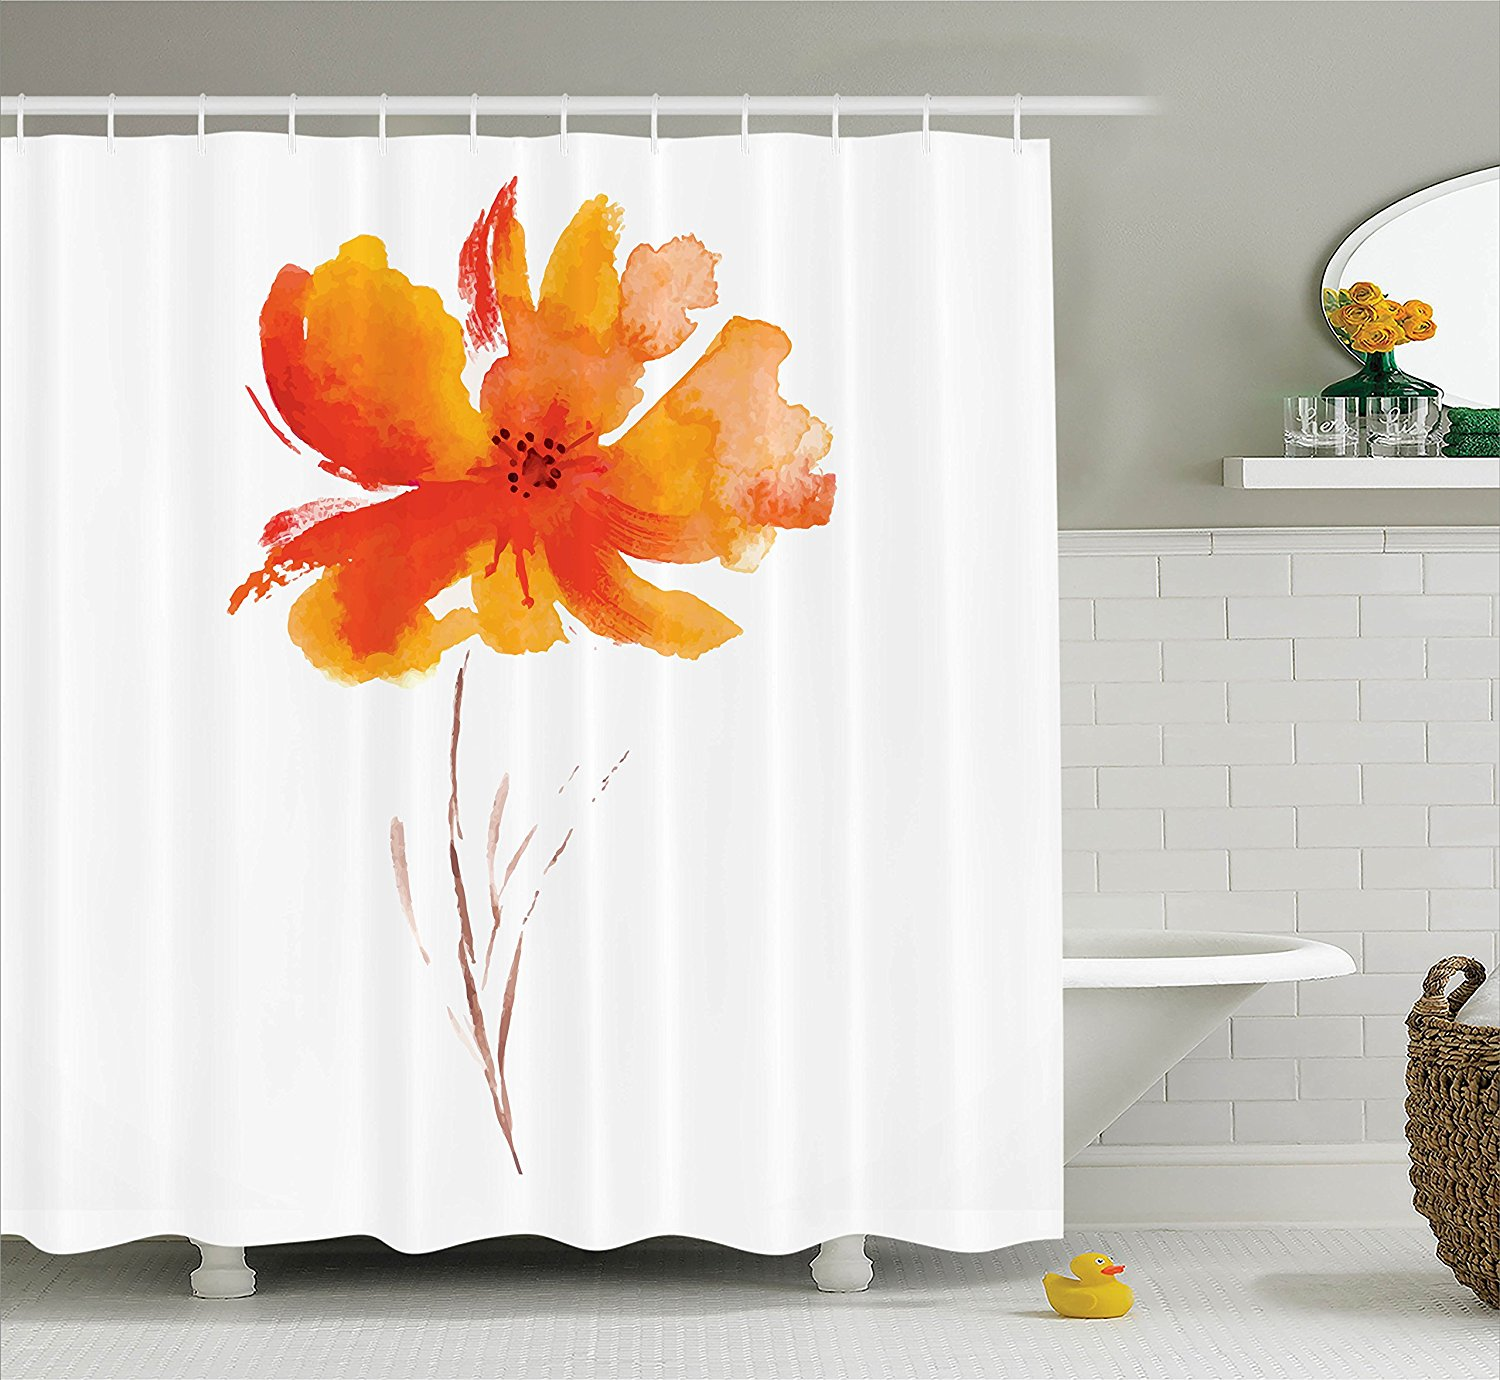 Memory Home Watercolor Flower Decor Shower Curtain Single Poppy Flower Bathroom  Accessories White Orange(China